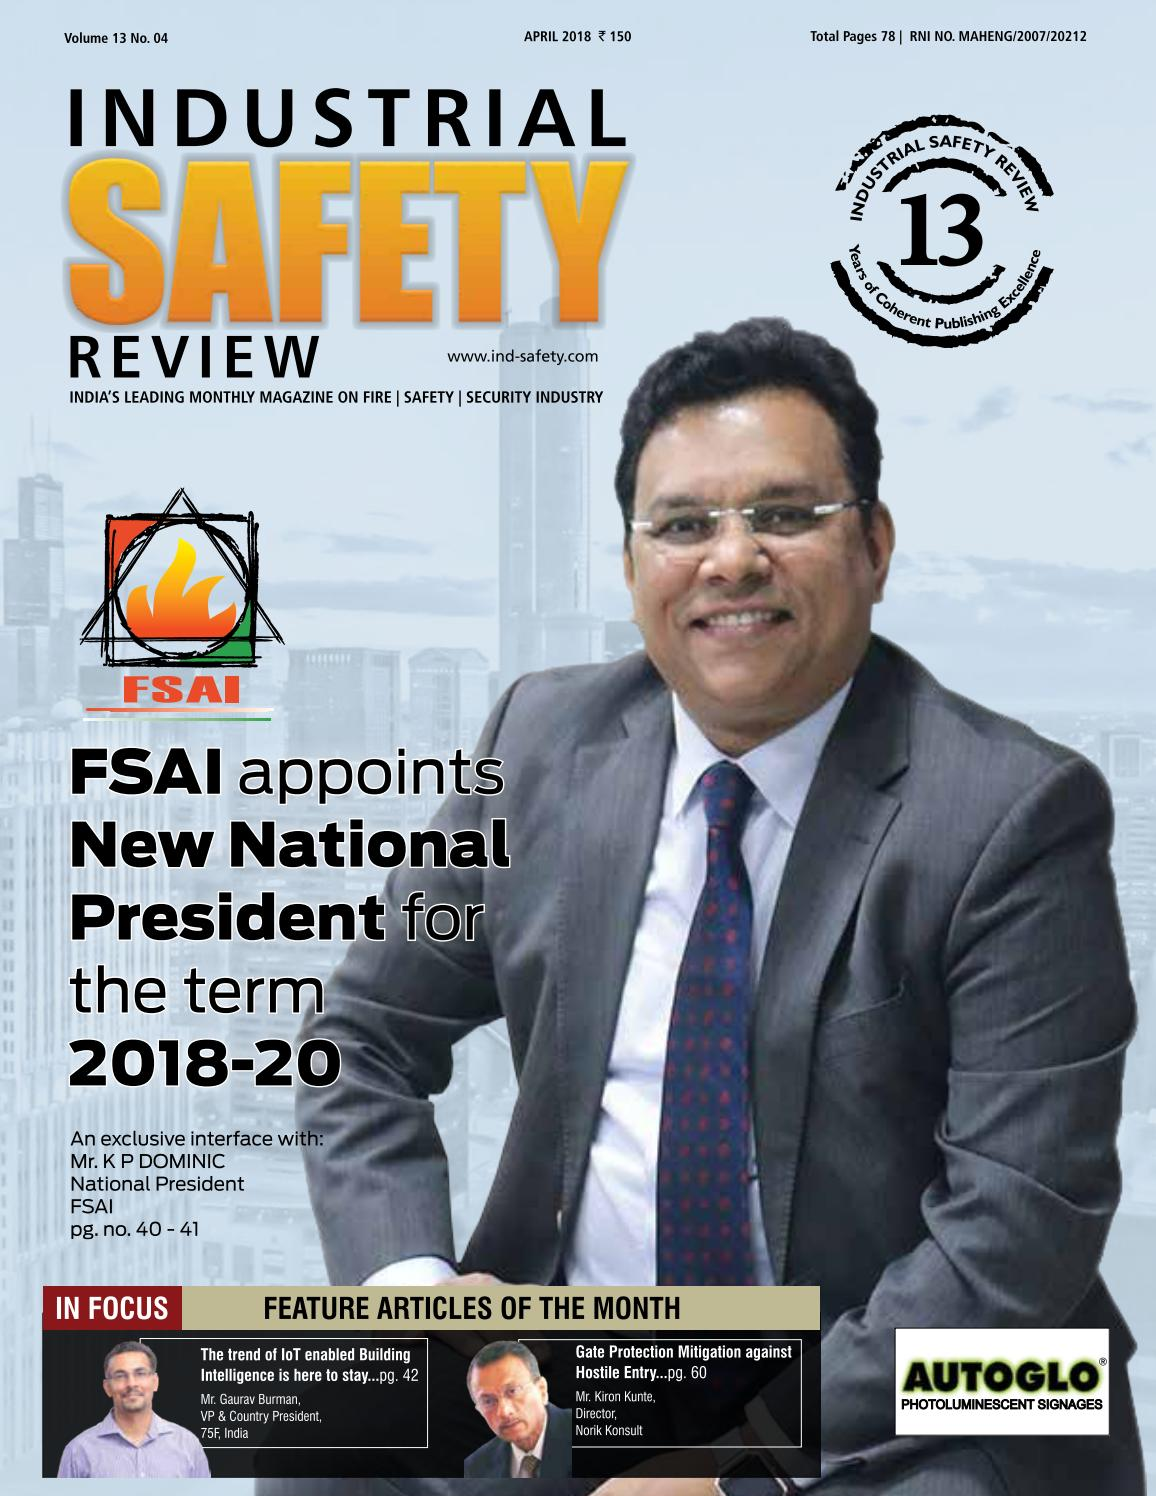 INDUSTRIAL SAFETY REVIEW APRIL 2018 by Divya Media Publications Pvt